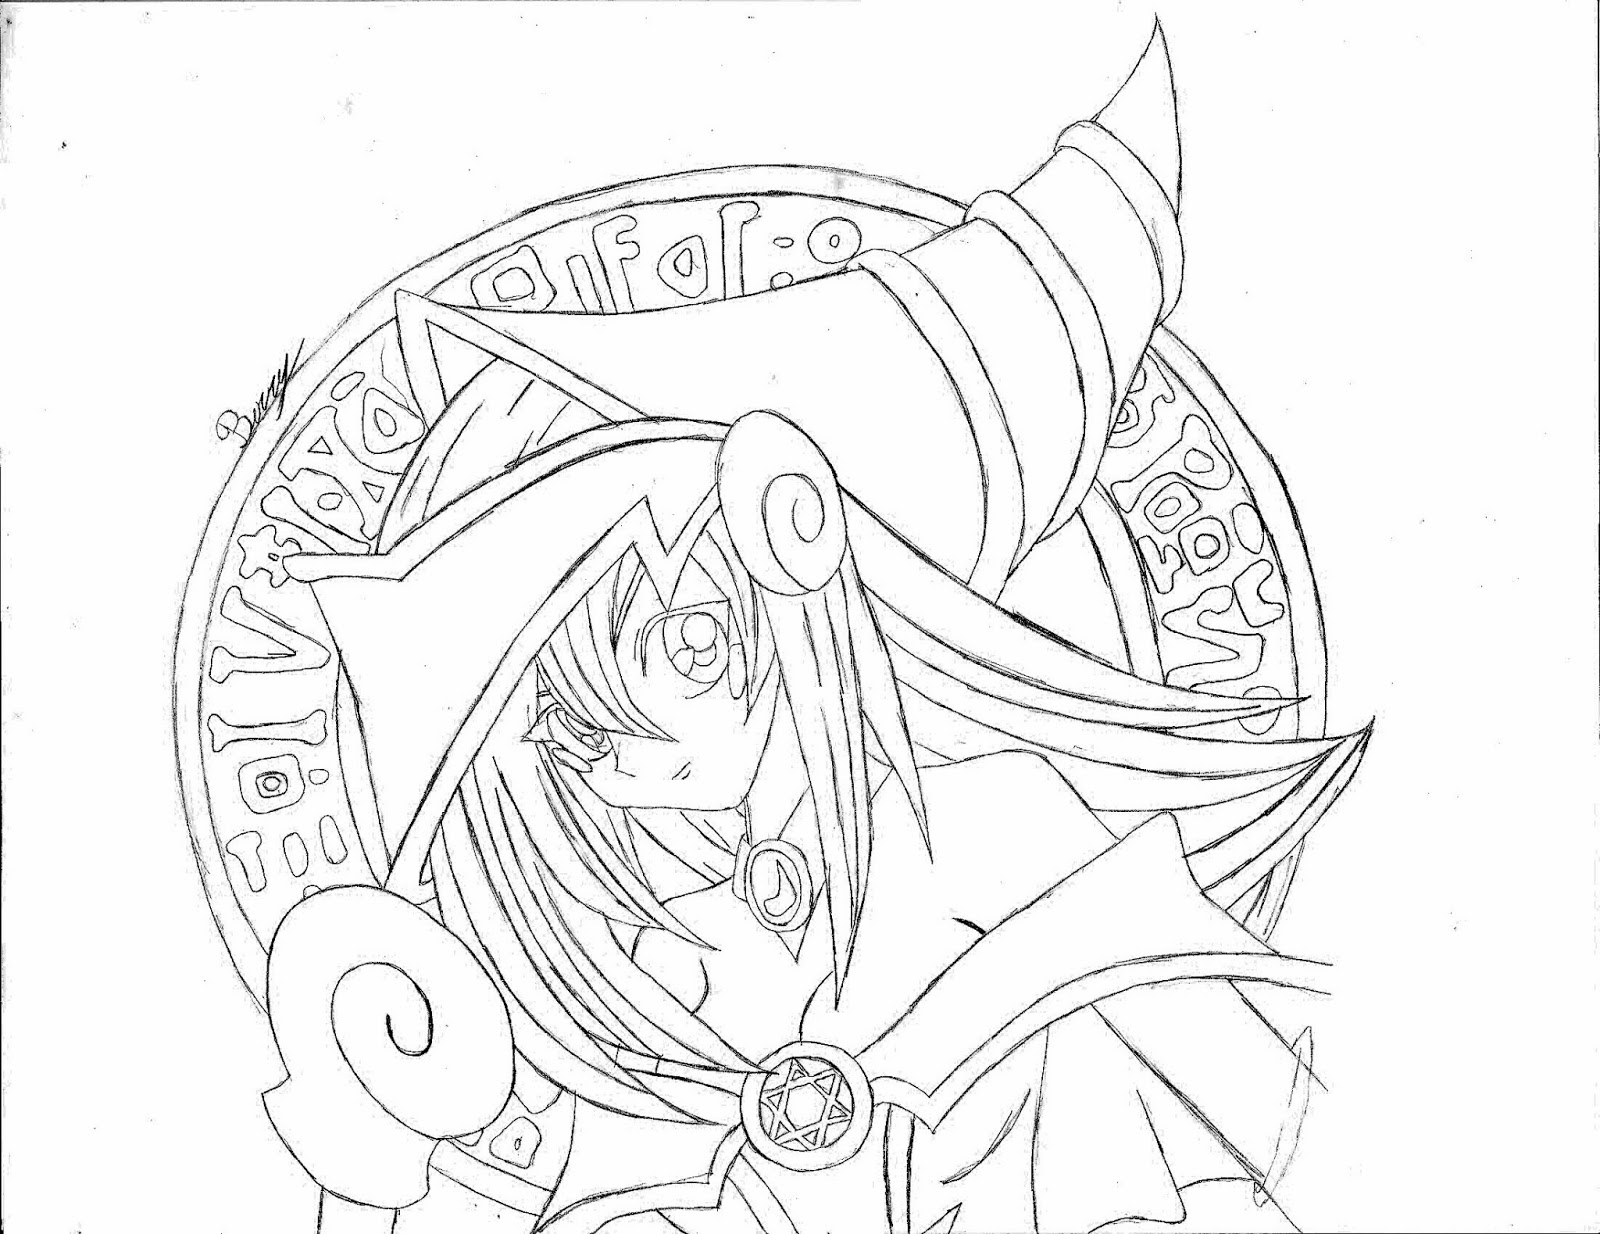 buddyfight coloring pages | Lorene- Digital Diva: January 2014